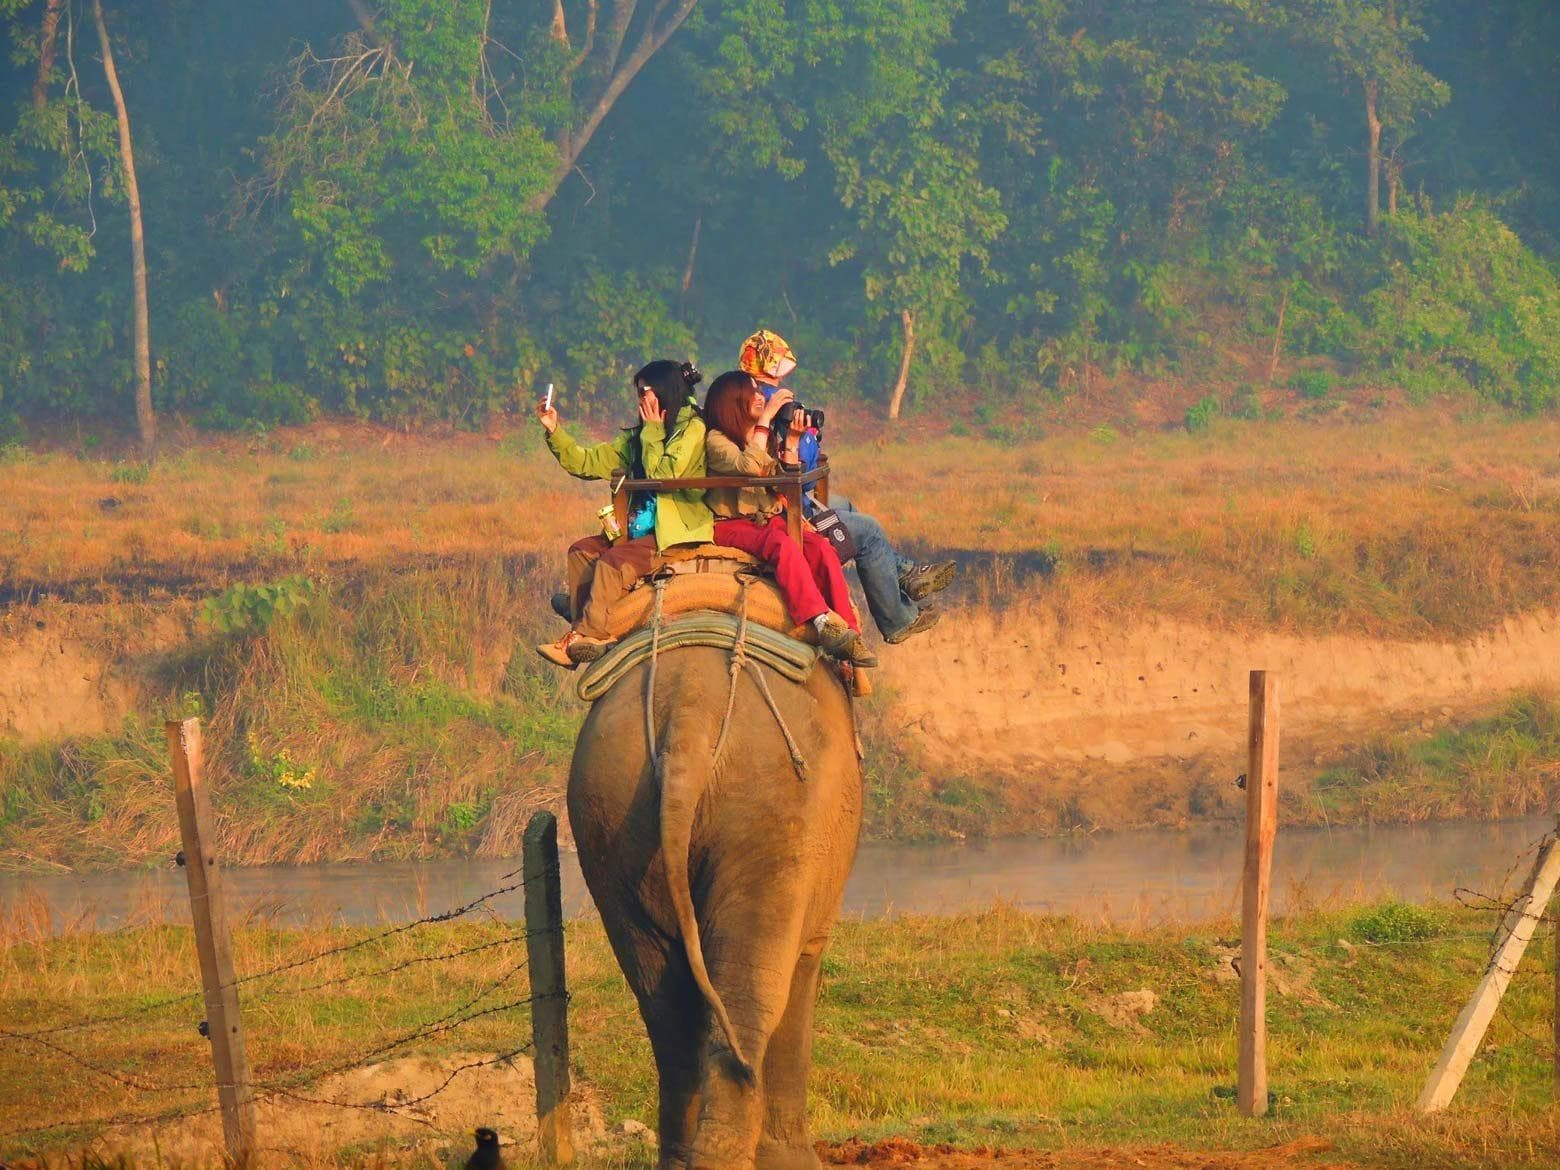 Elephant nature park's project - elephant trails spread awareness against elephant riding